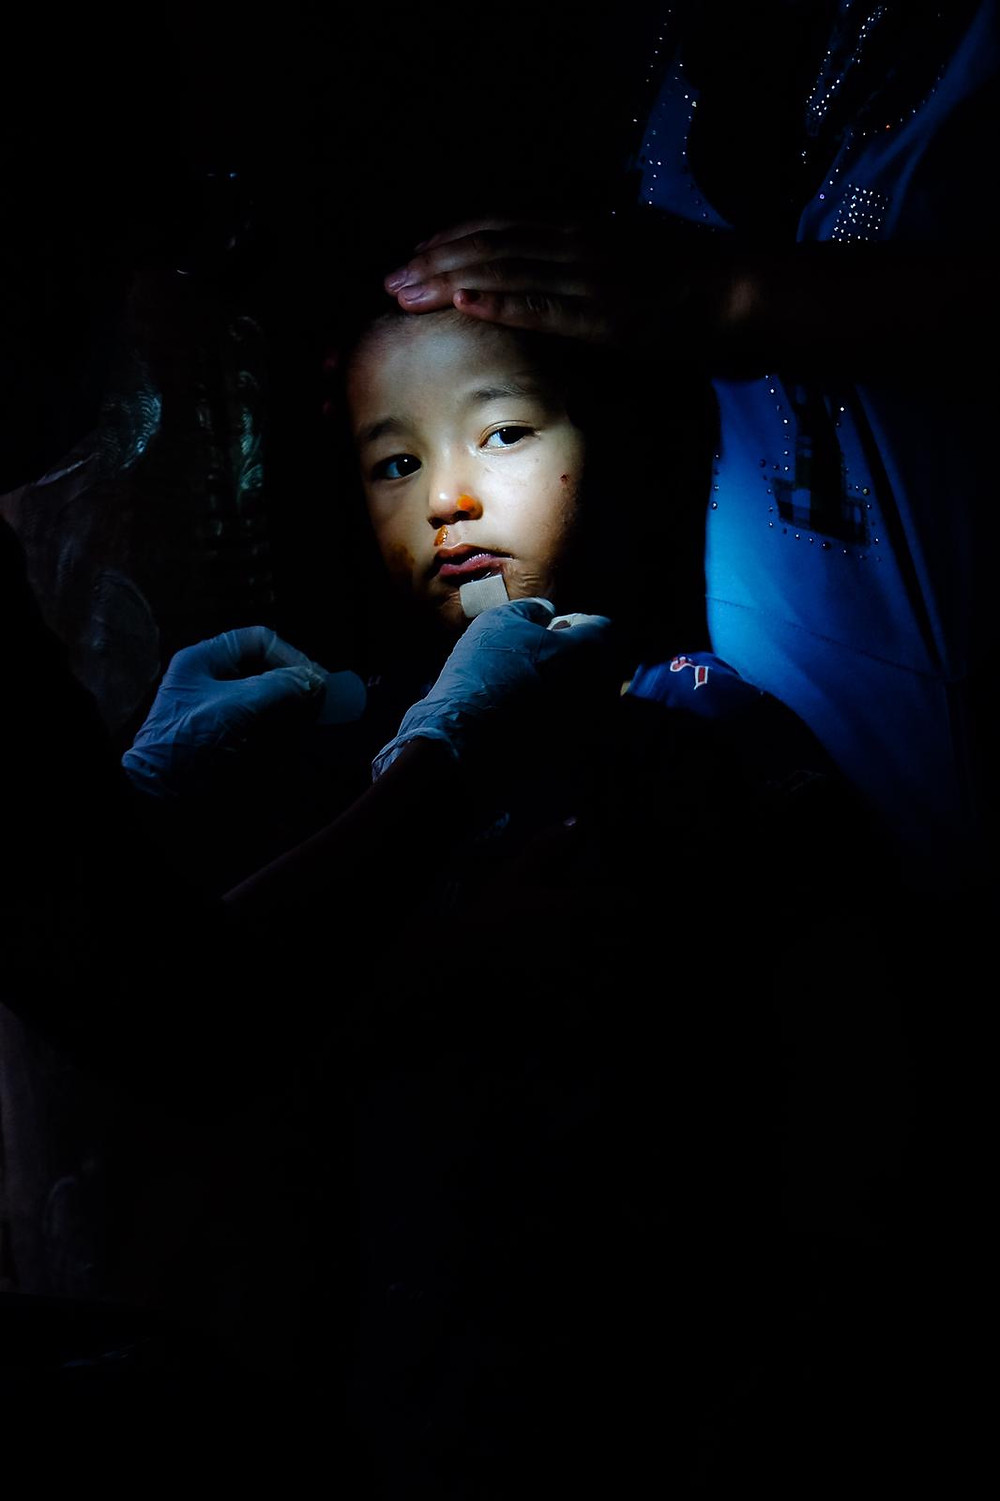 Children face at iluminated in mothers arms